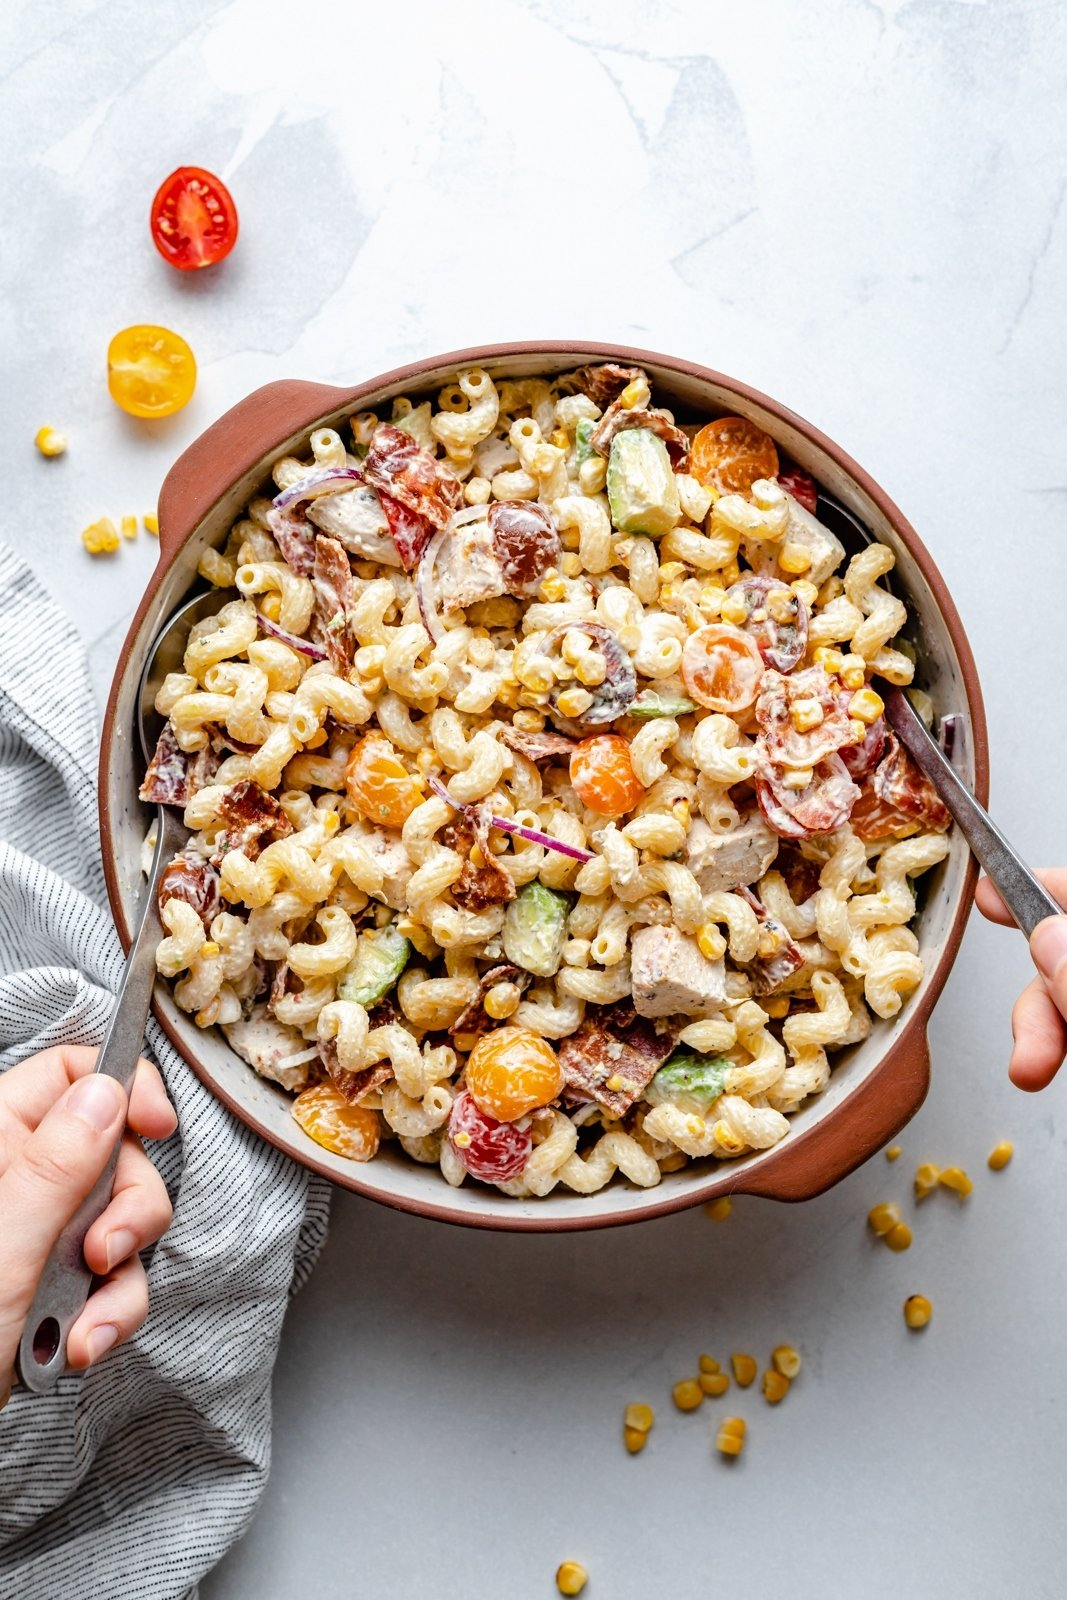 spooning up chicken and bacon pasta salad from a bowl